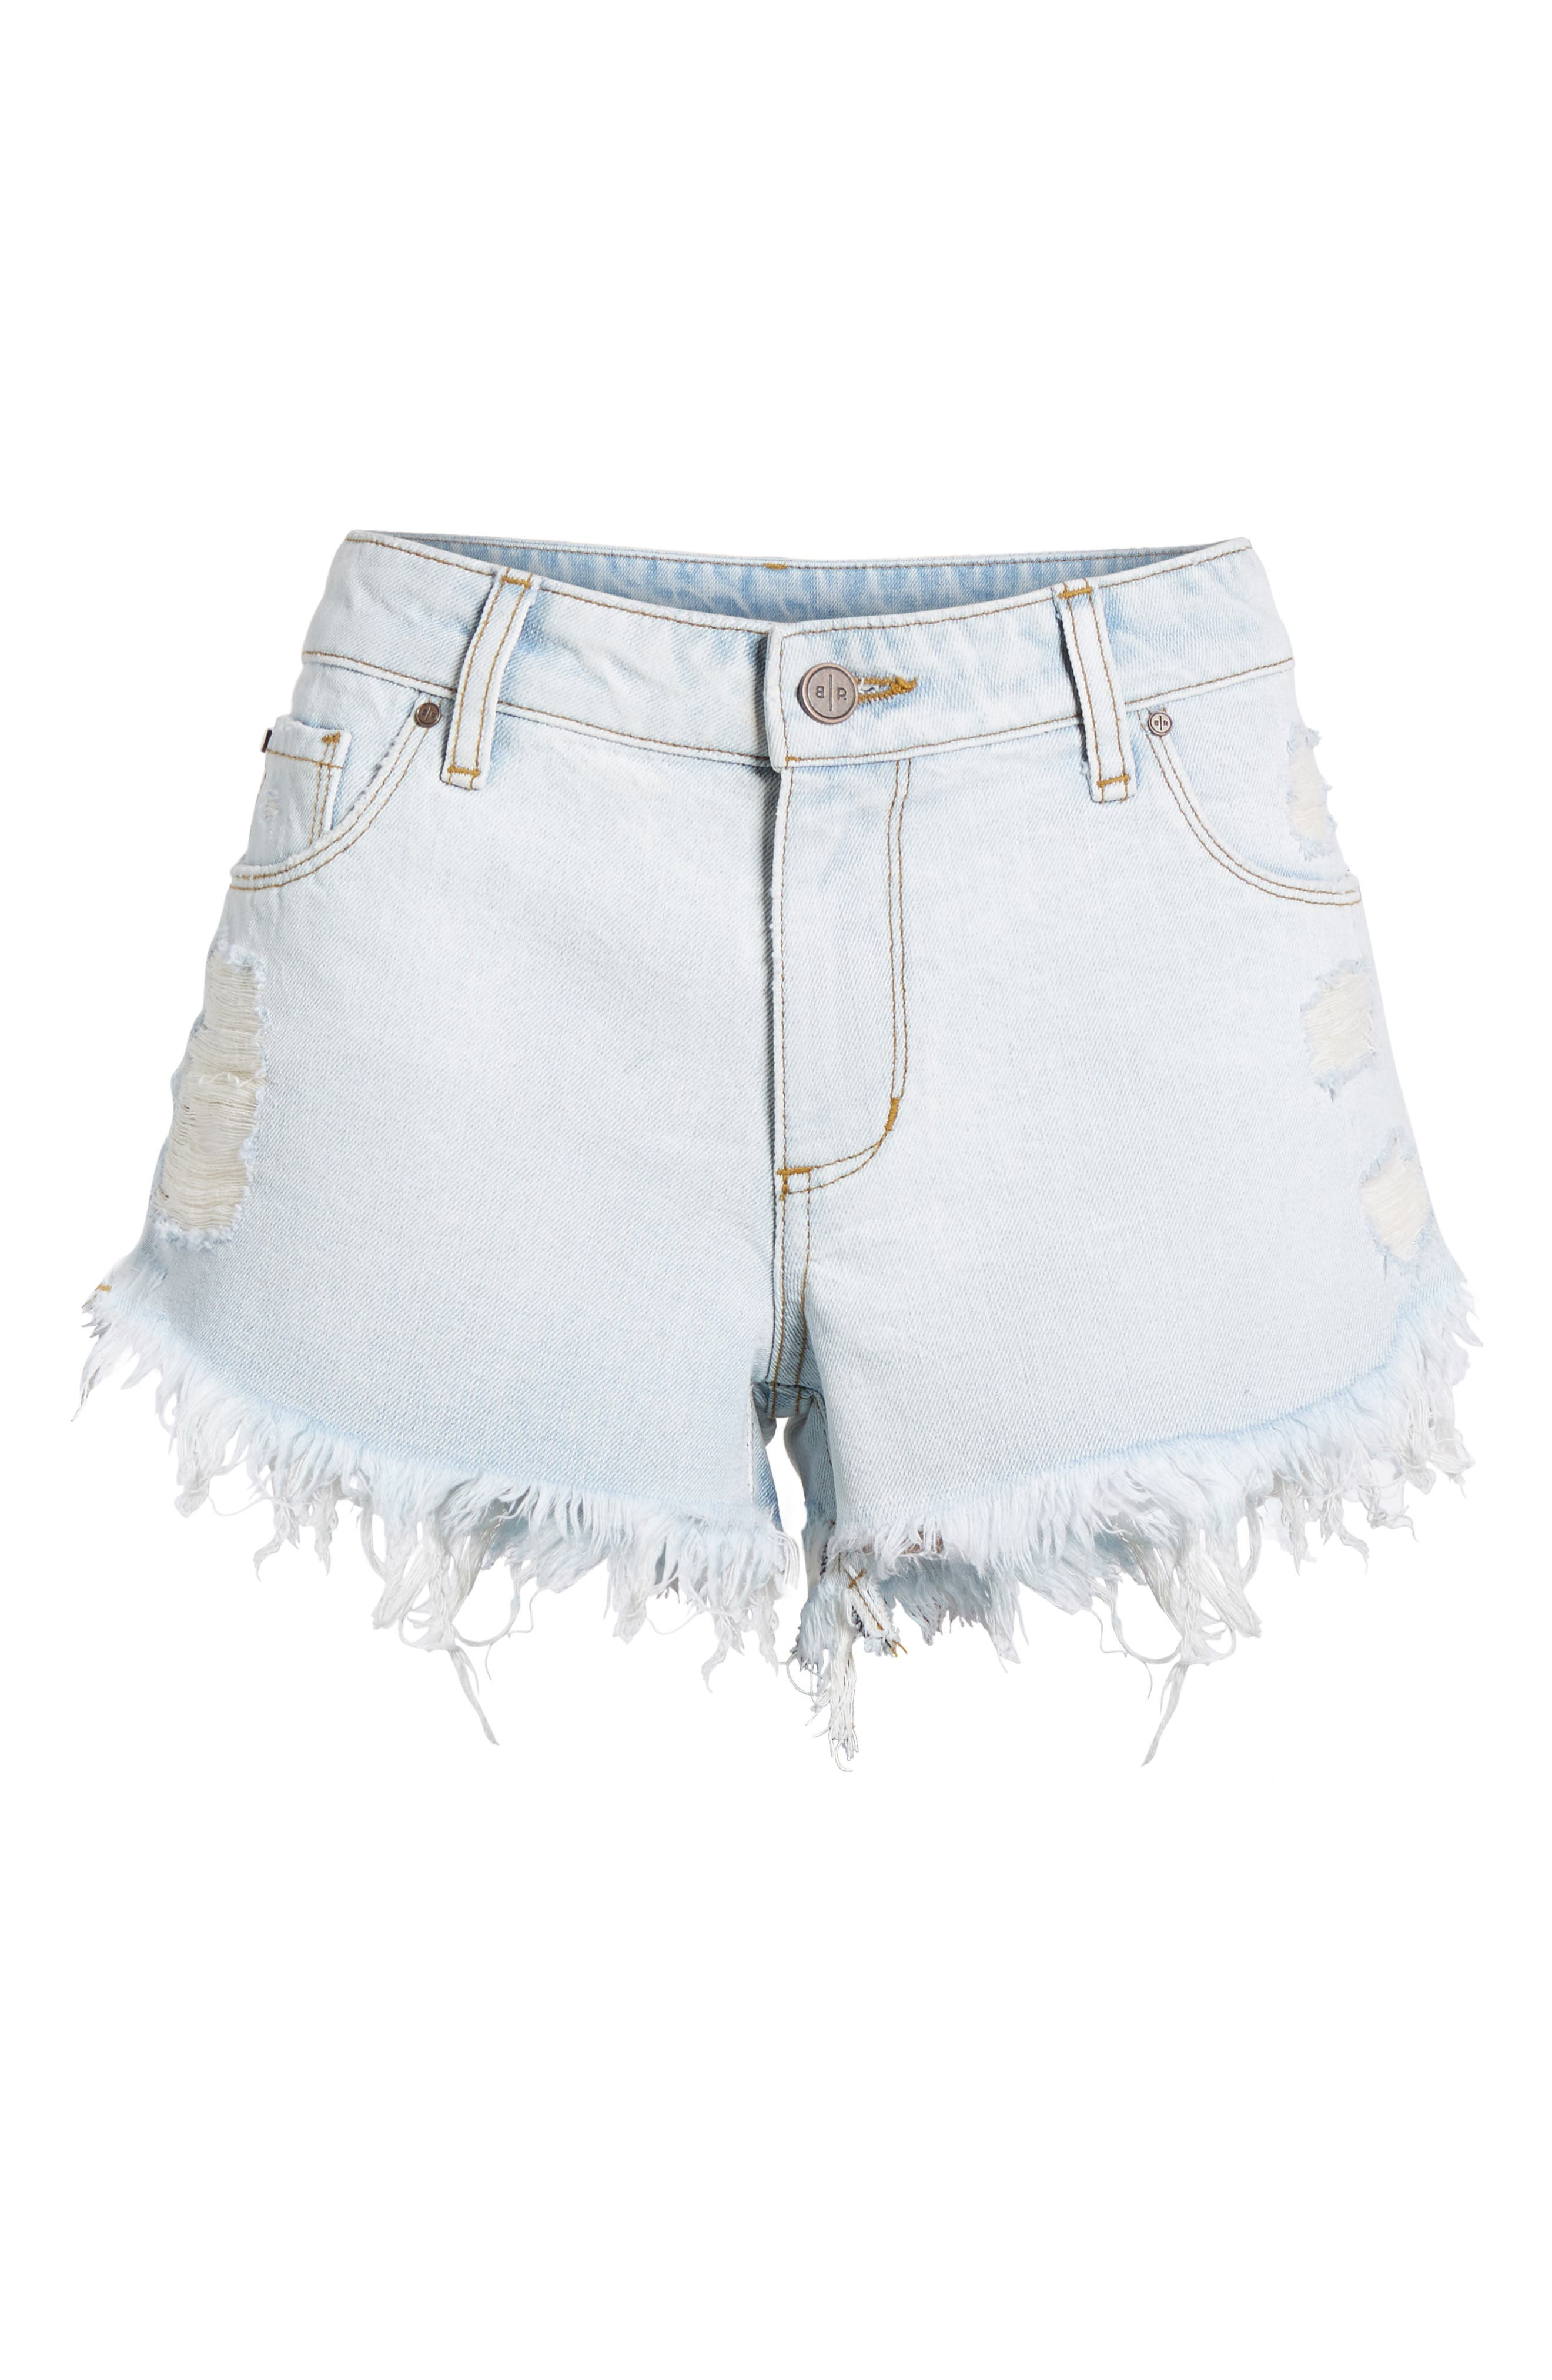 Fray Hem Denim Shorts,                             Alternate thumbnail 6, color,                             Light Wash